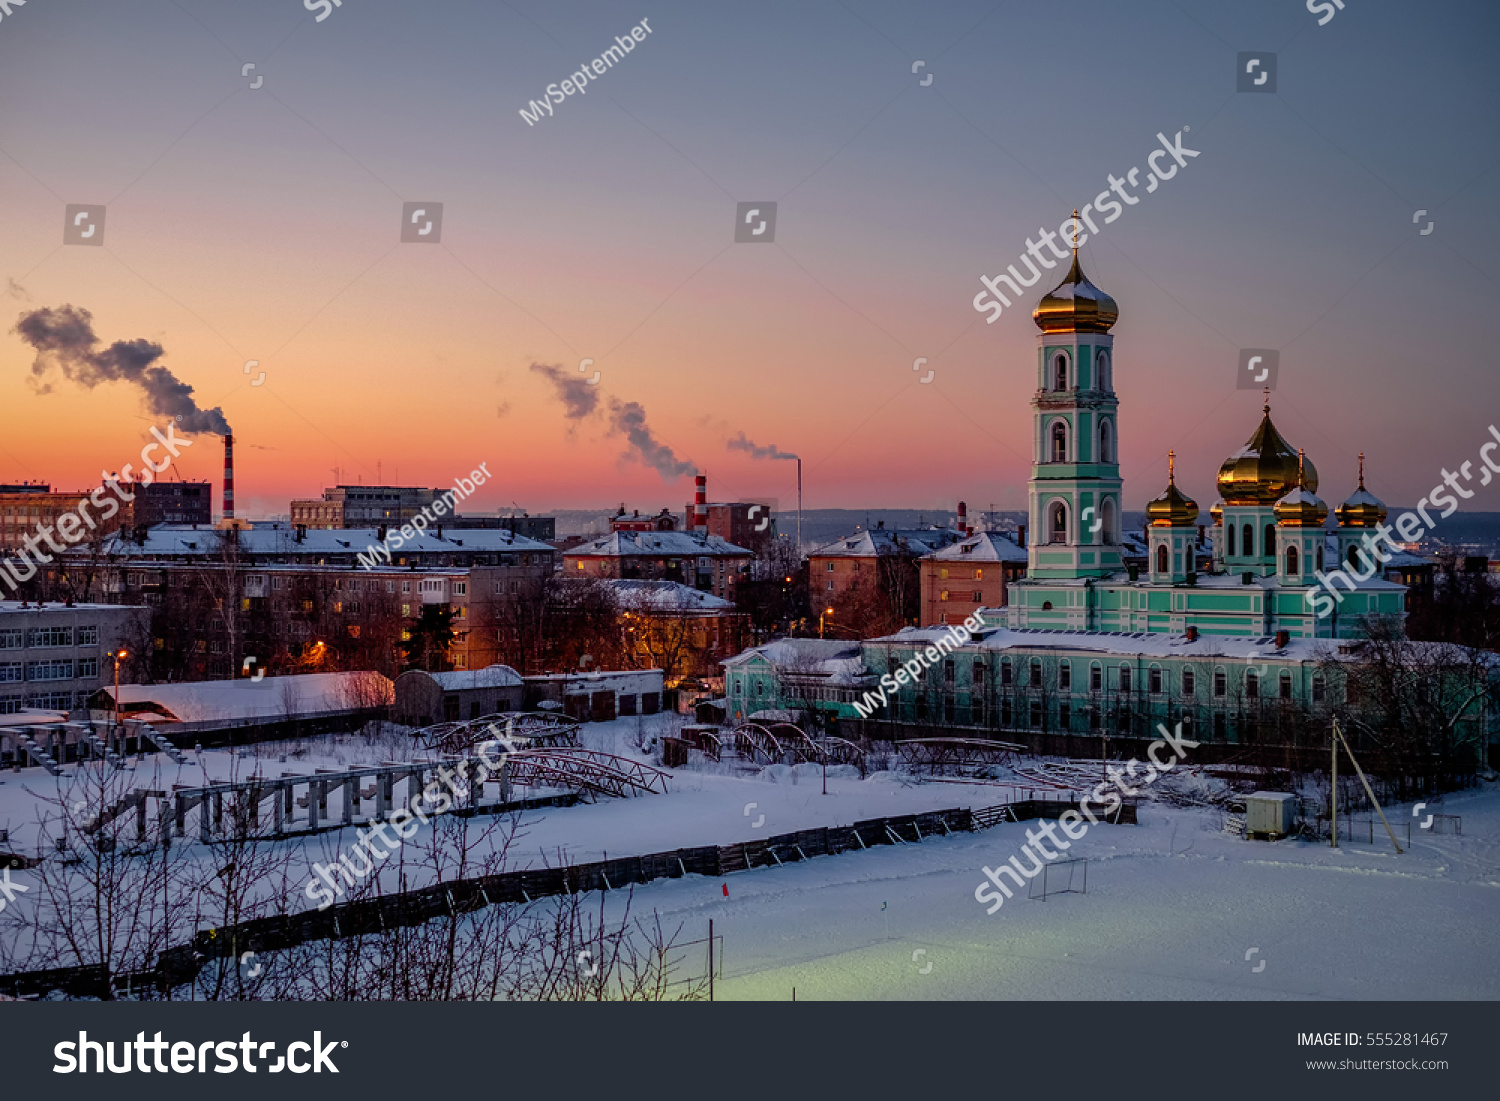 Church at sunset in winter. Perm, Russia. #555281467